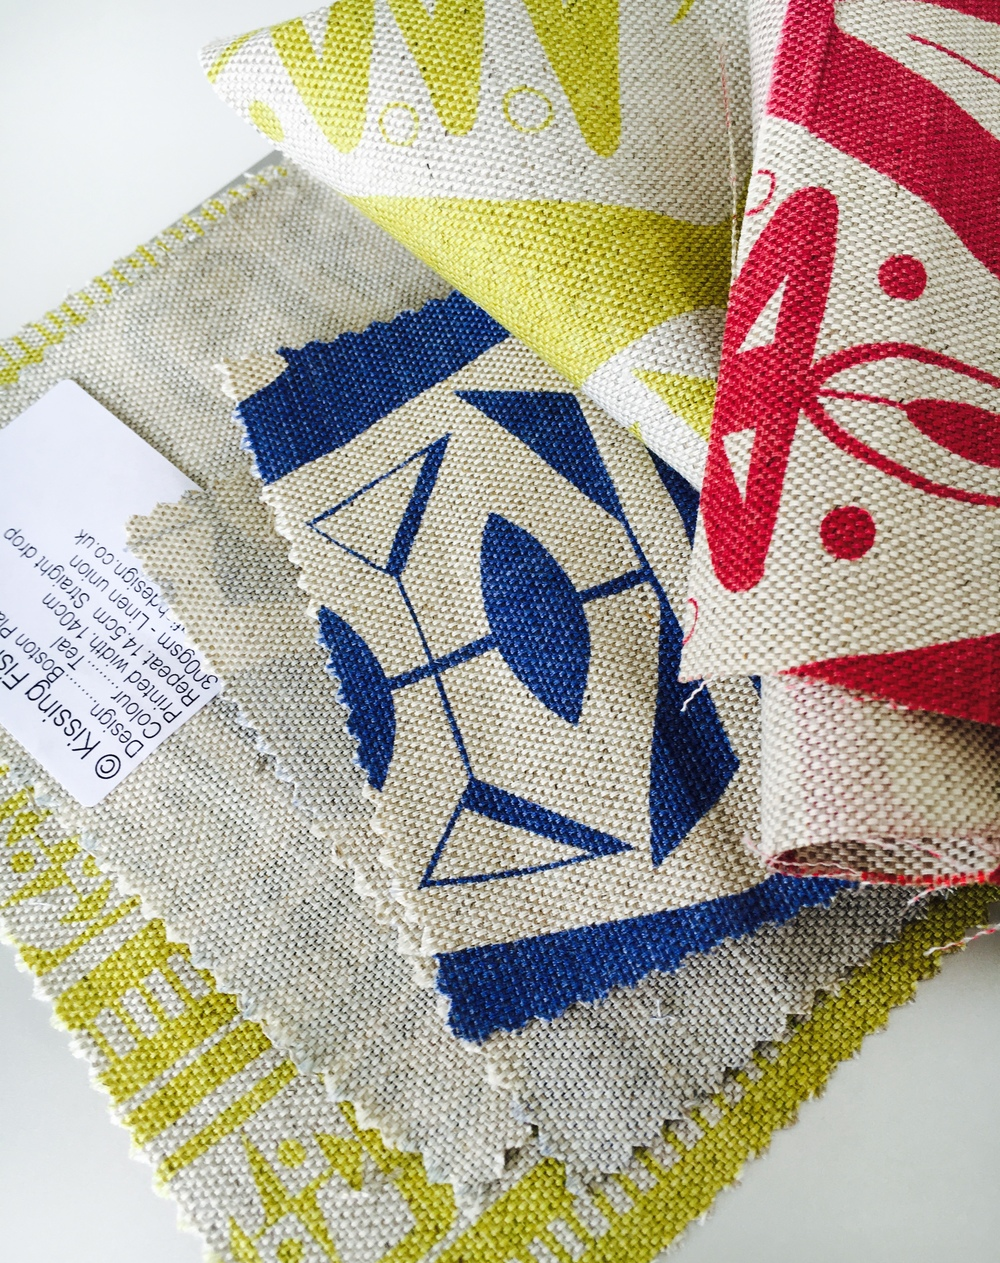 Shown here are 'Boston Place' and 'Dorset Square' designs in Bitter Lime, Blue and Red